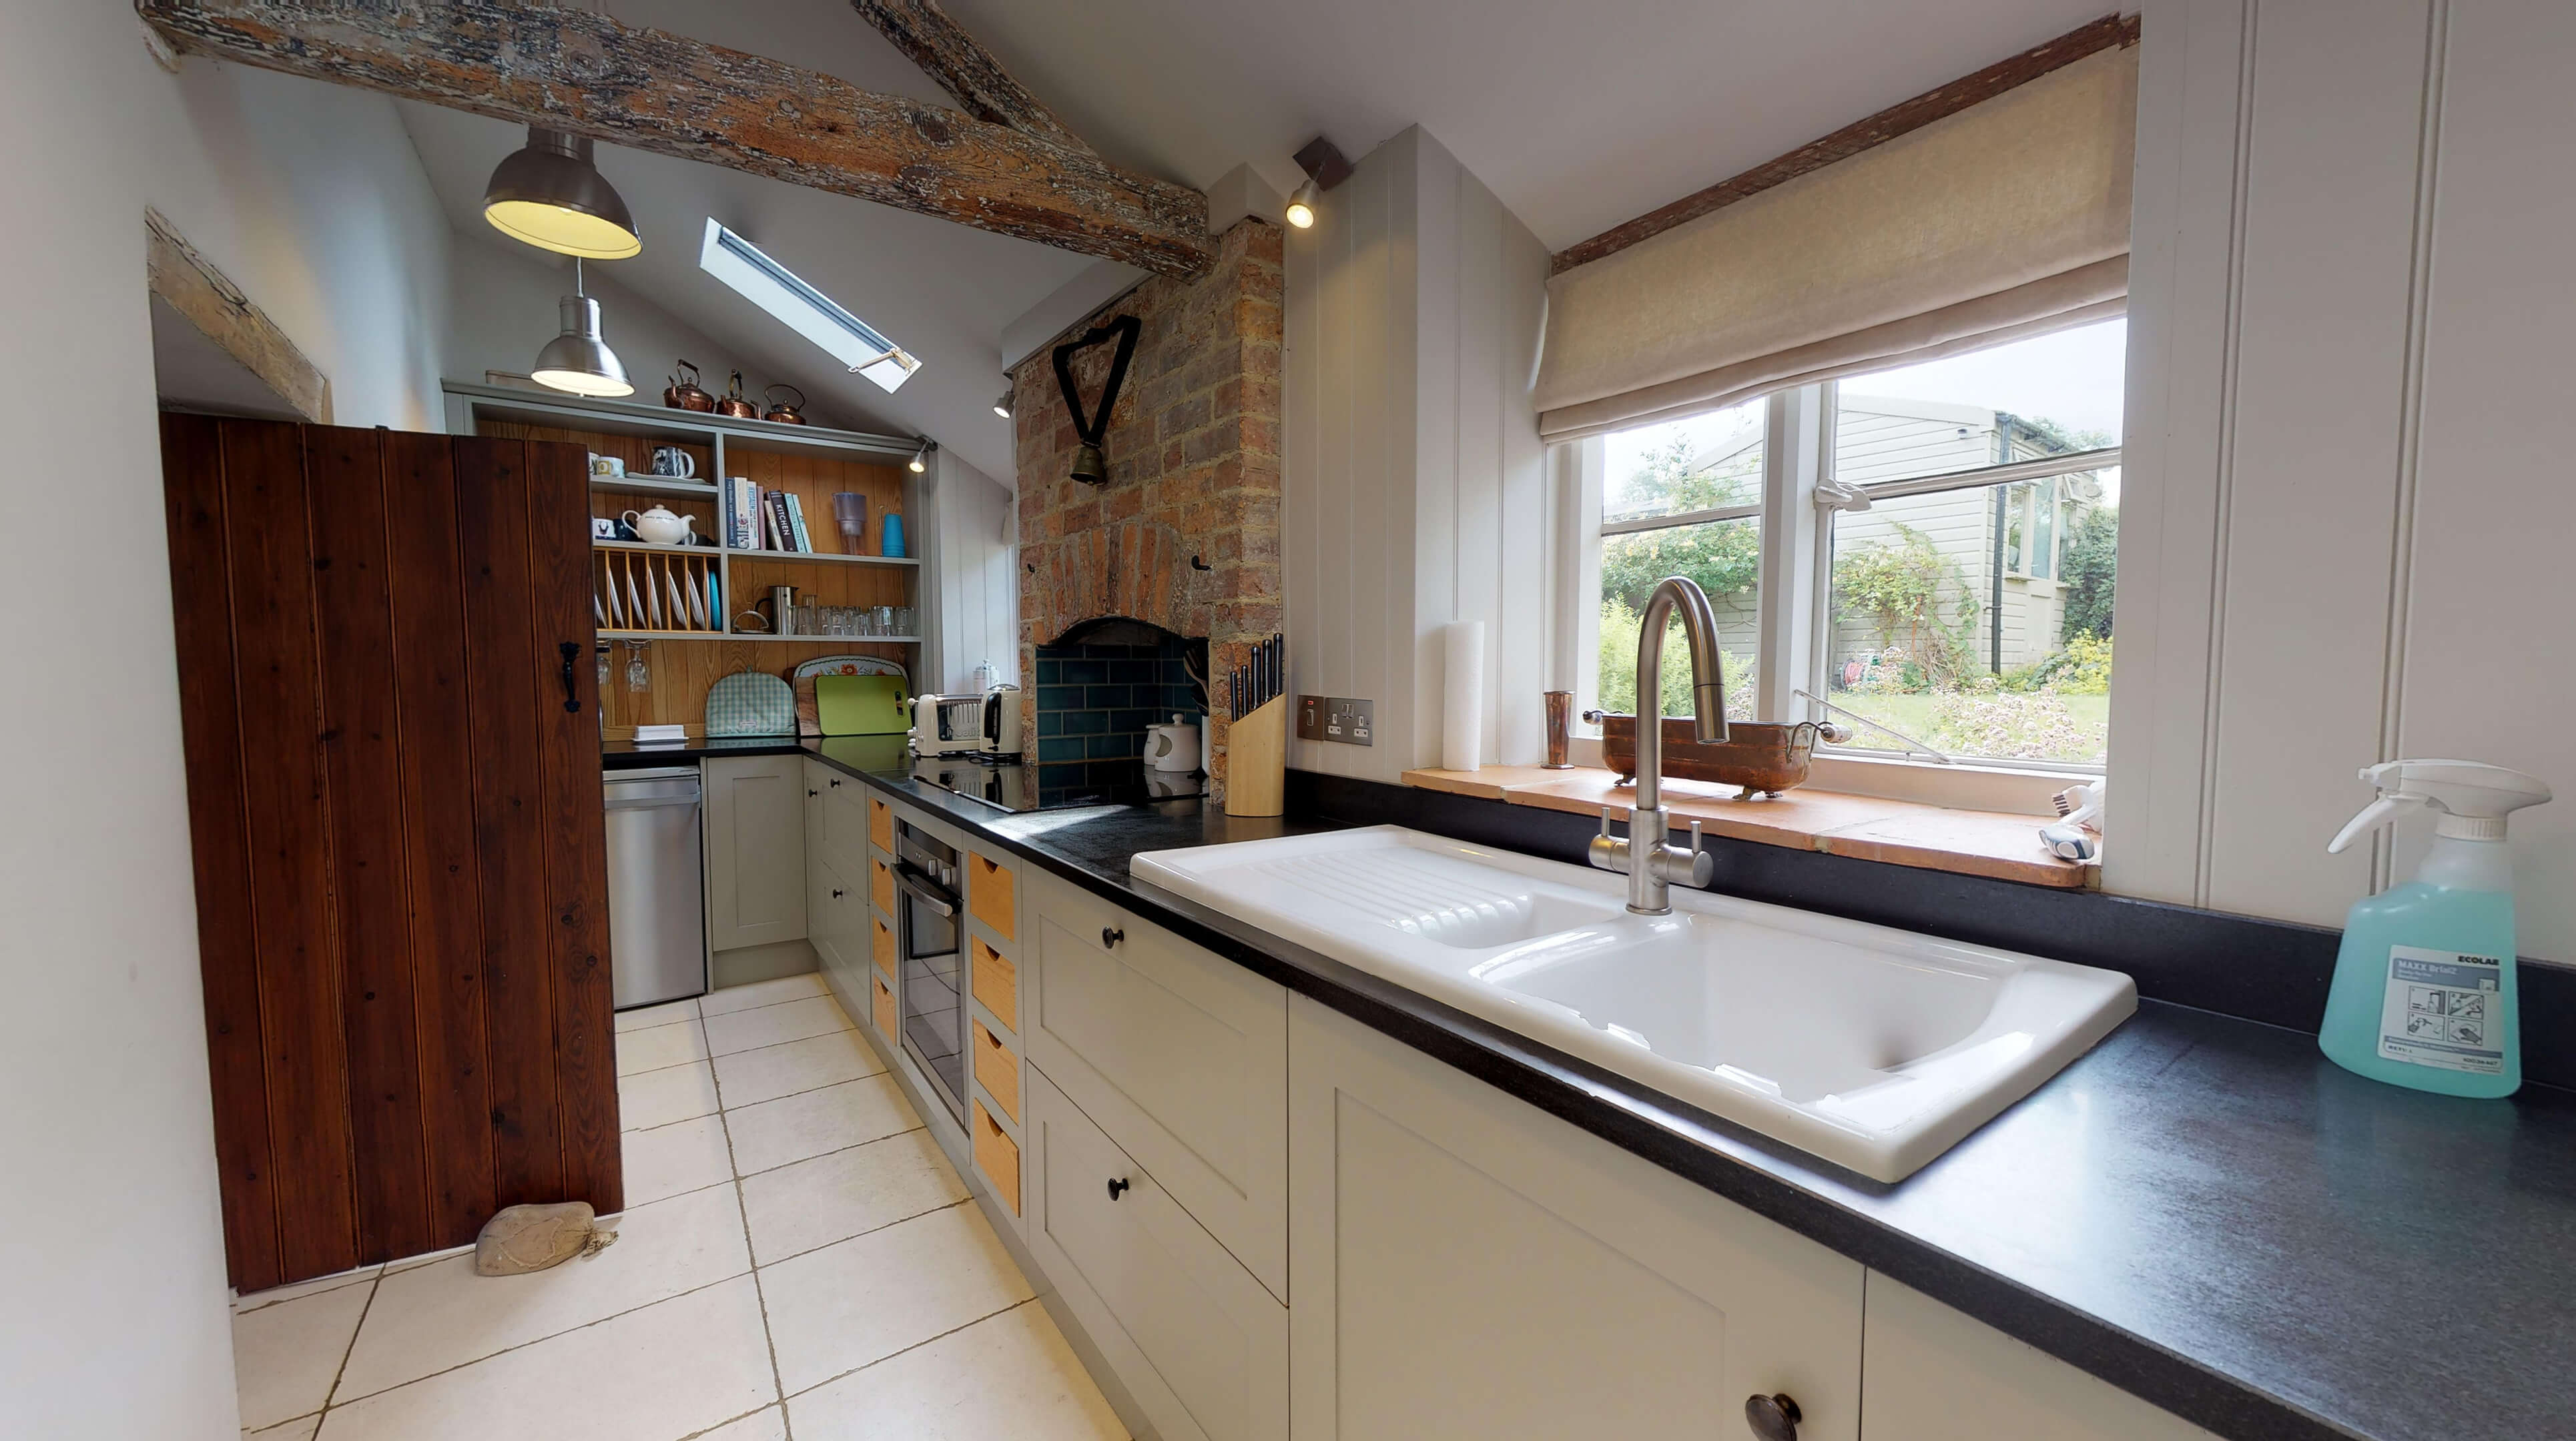 Lower Heyford Three Bedroom Coopers Cottage Kitchen 2